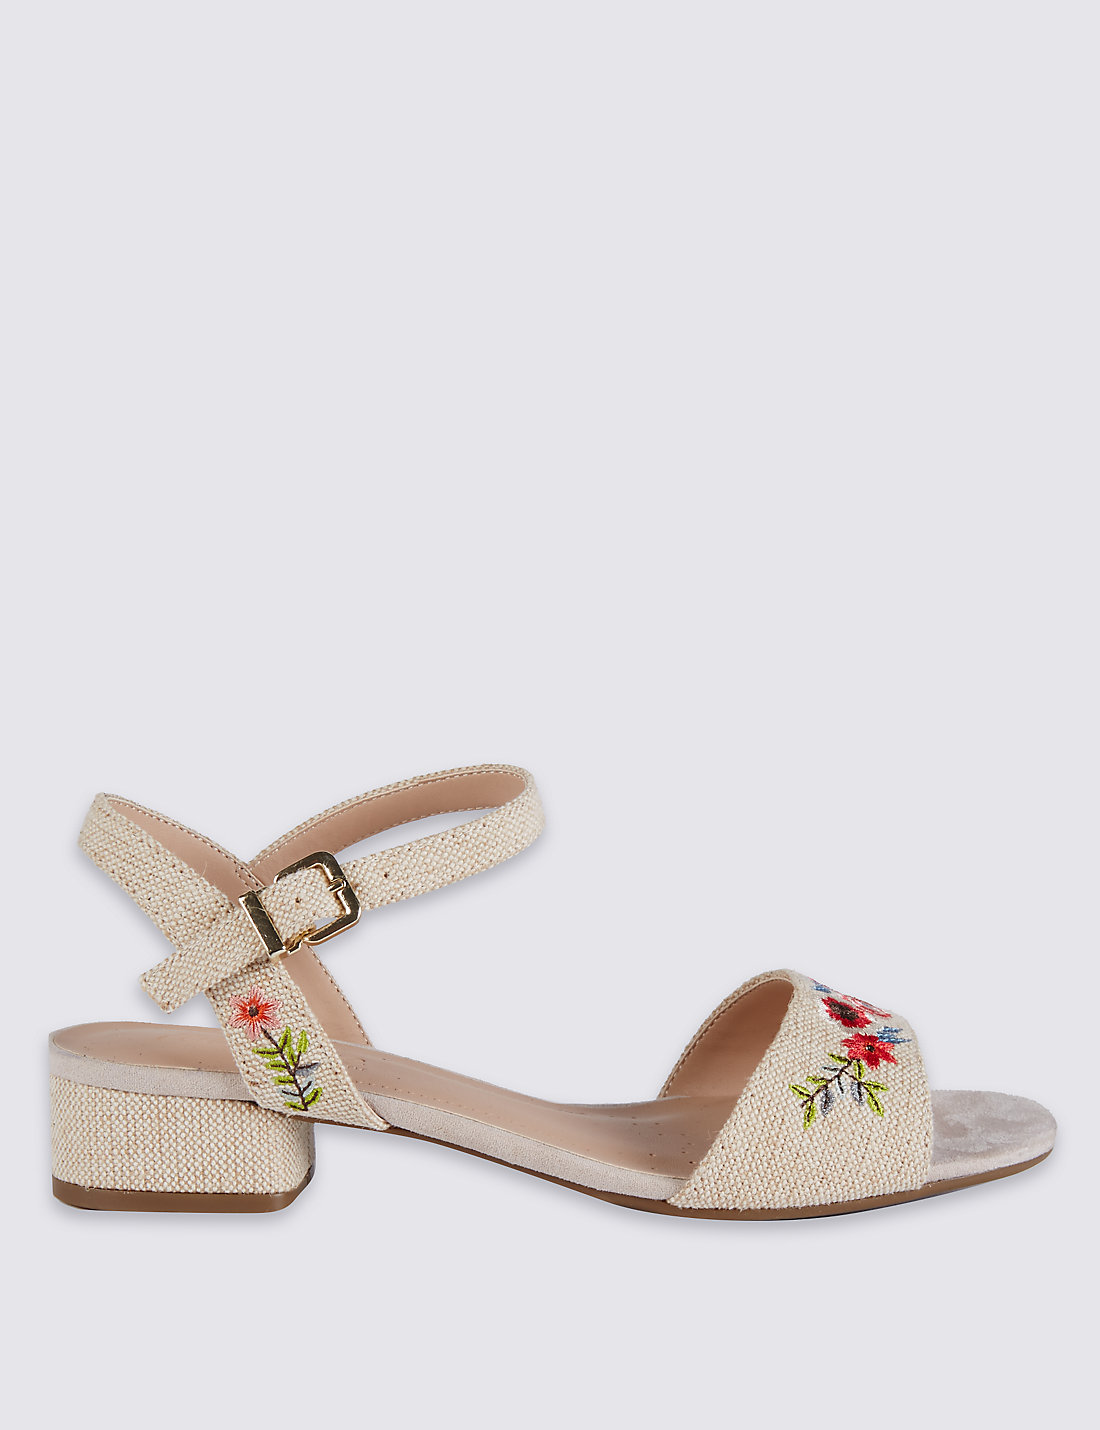 Shoes zone sandals - Wide Fit Block Heel Embroidered Sandals